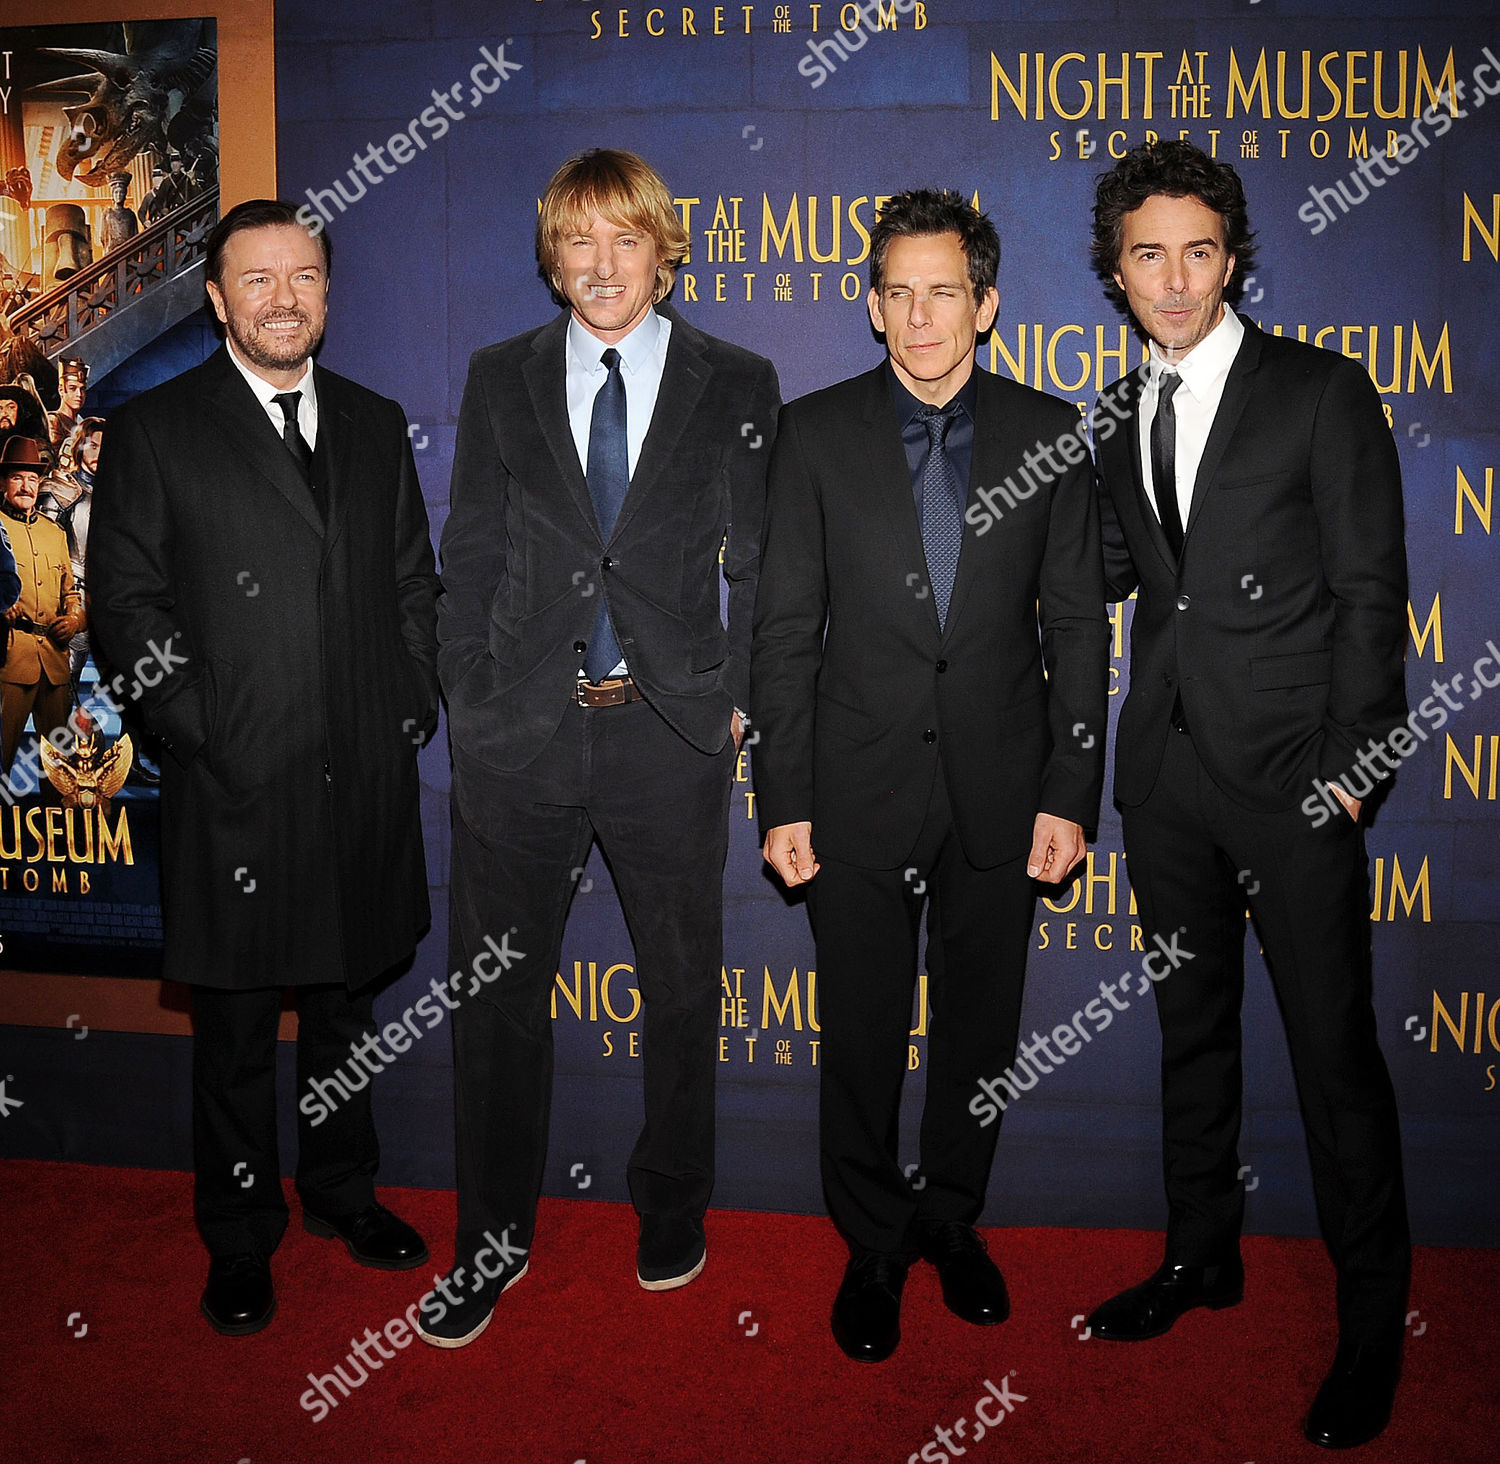 'Night at the Museum: Secret of the Tomb' film premiere, New York, America - 11 Dec 2014: стоковое фото